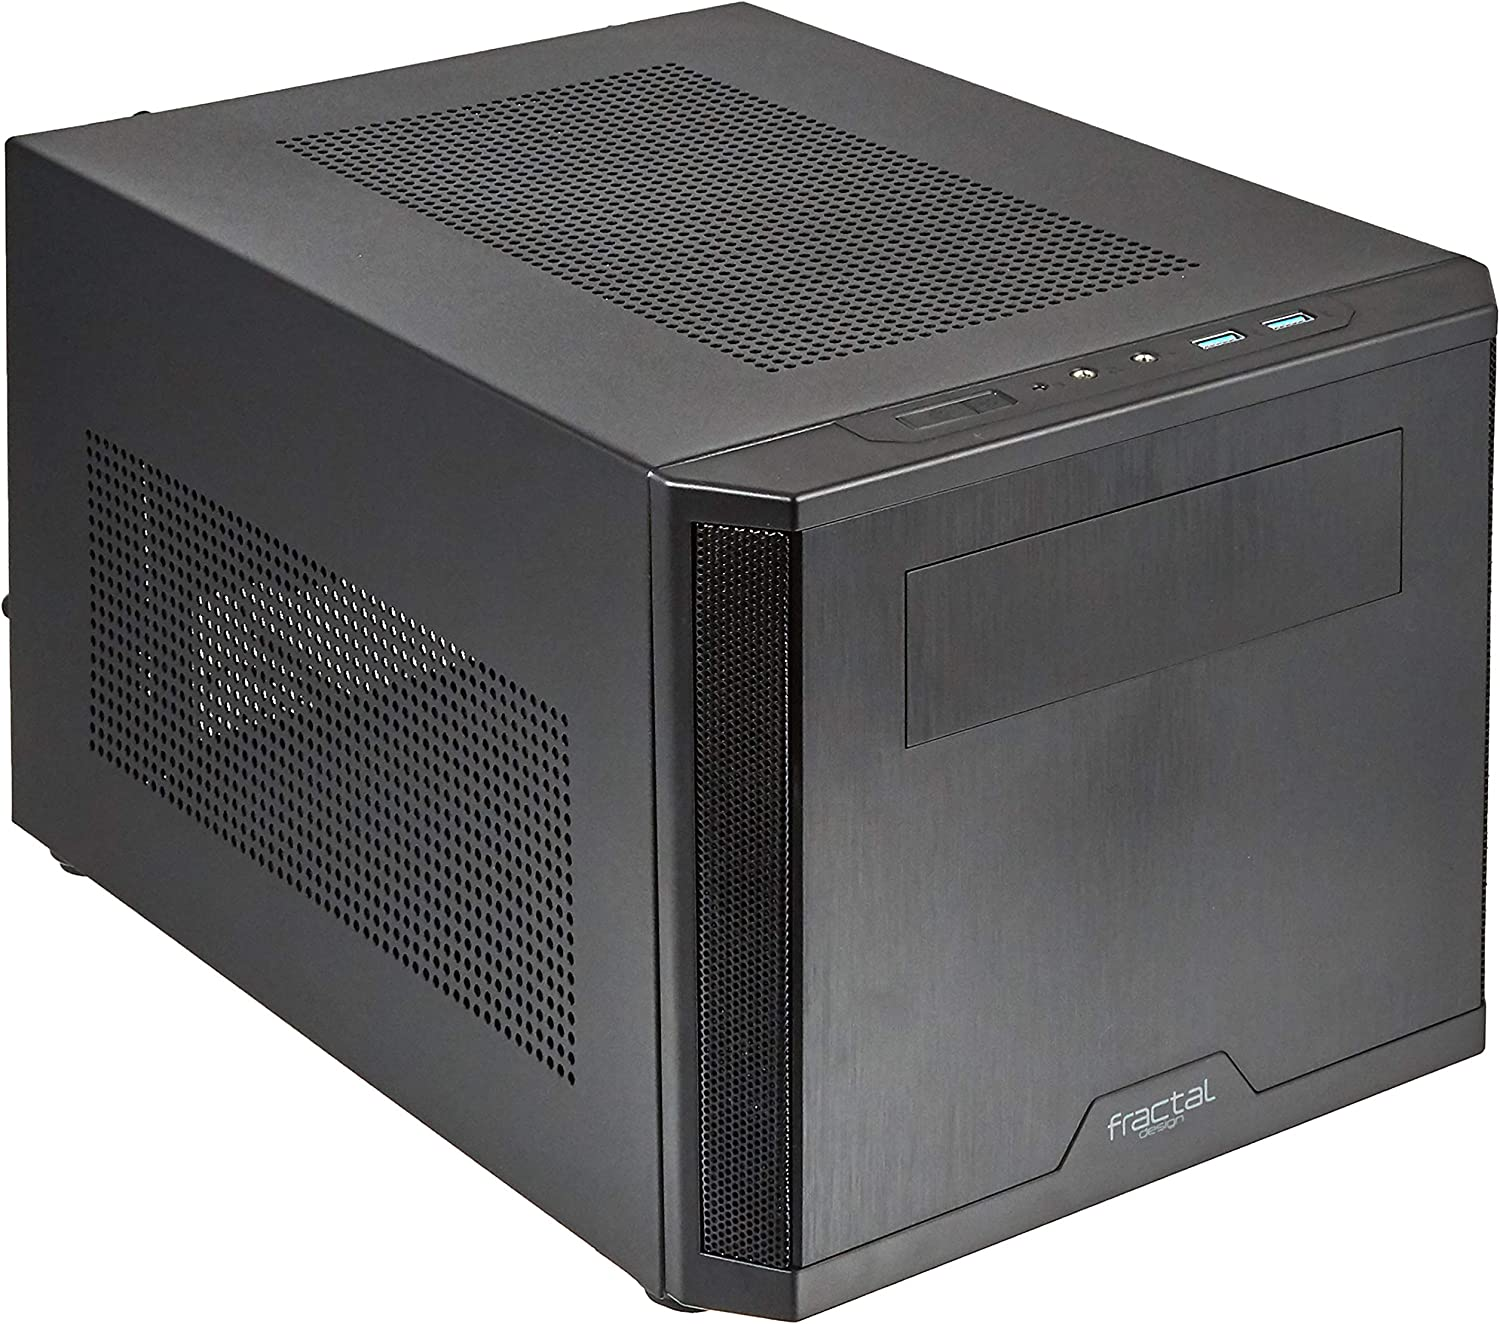 Fractal Design(フラクタルデザイン)『CS5267 FD-CA-CORE-500』